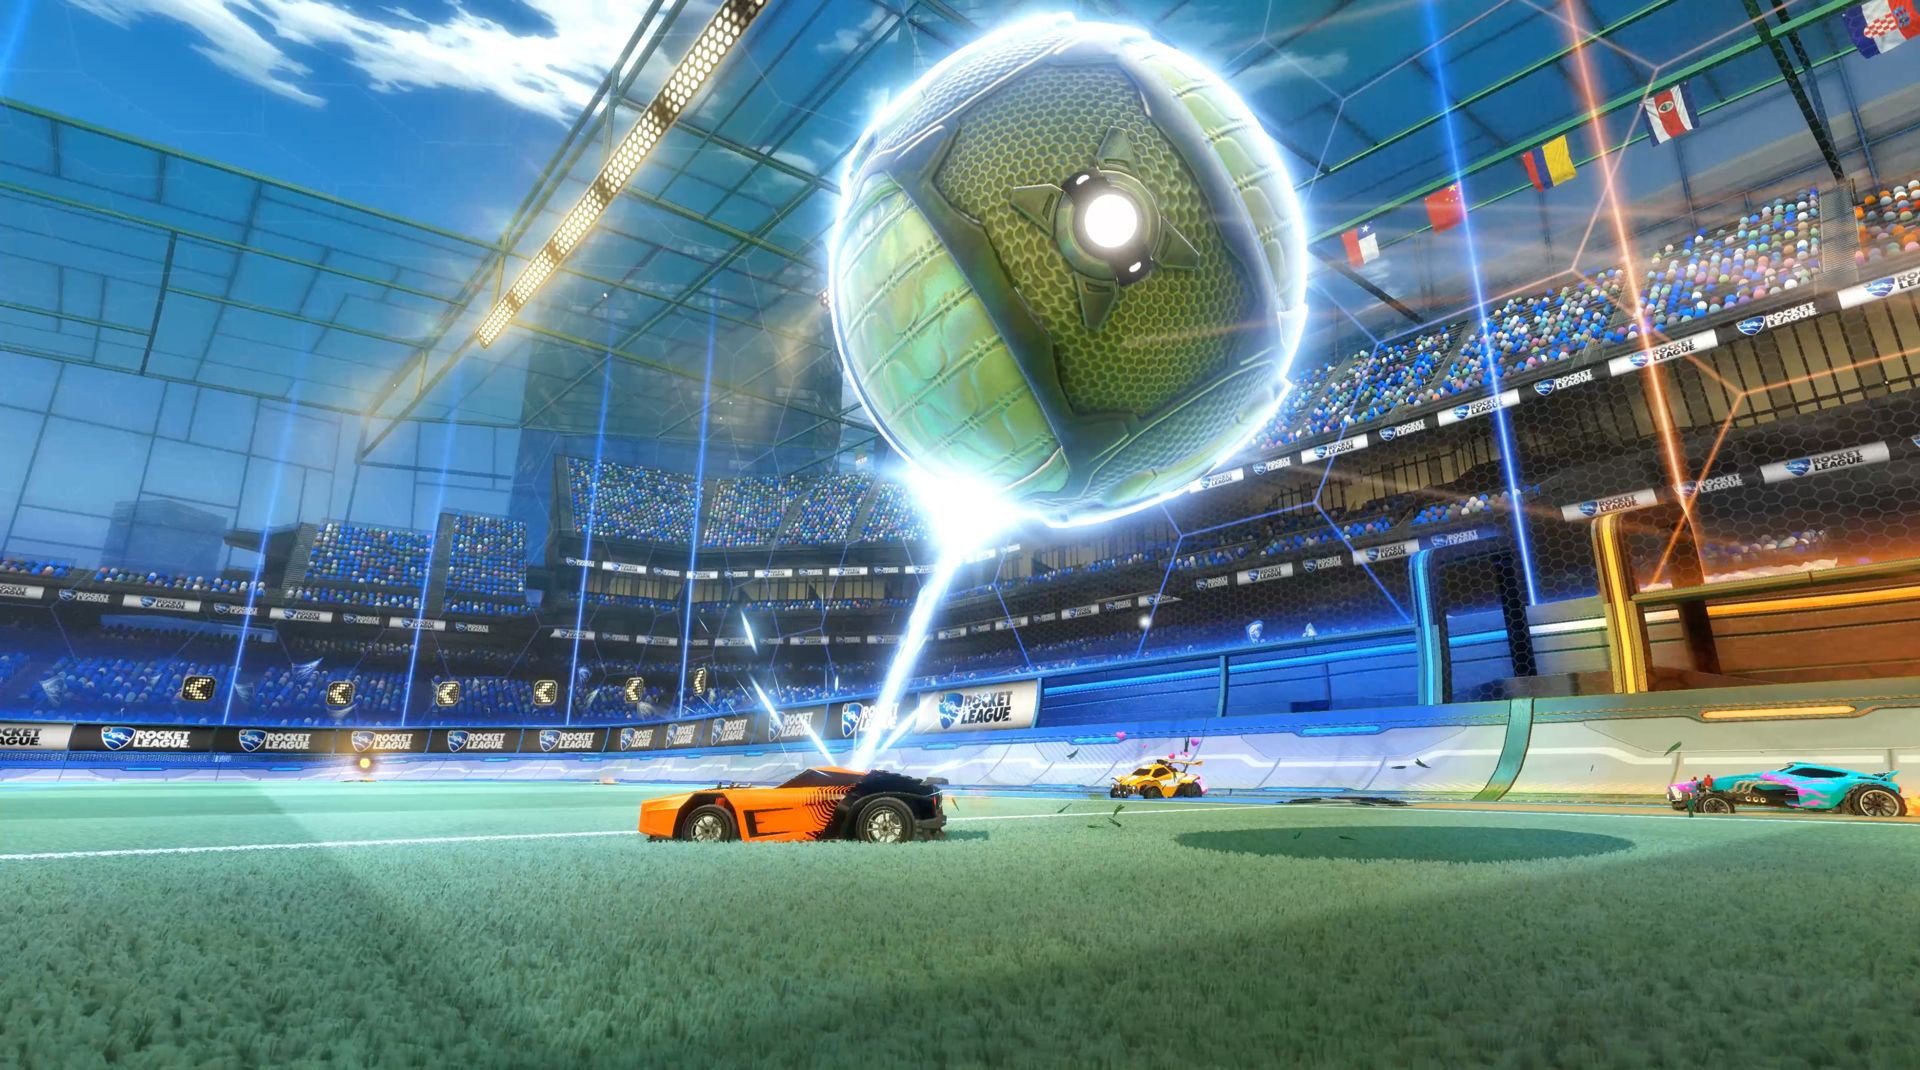 rocket-league-screenshot-009